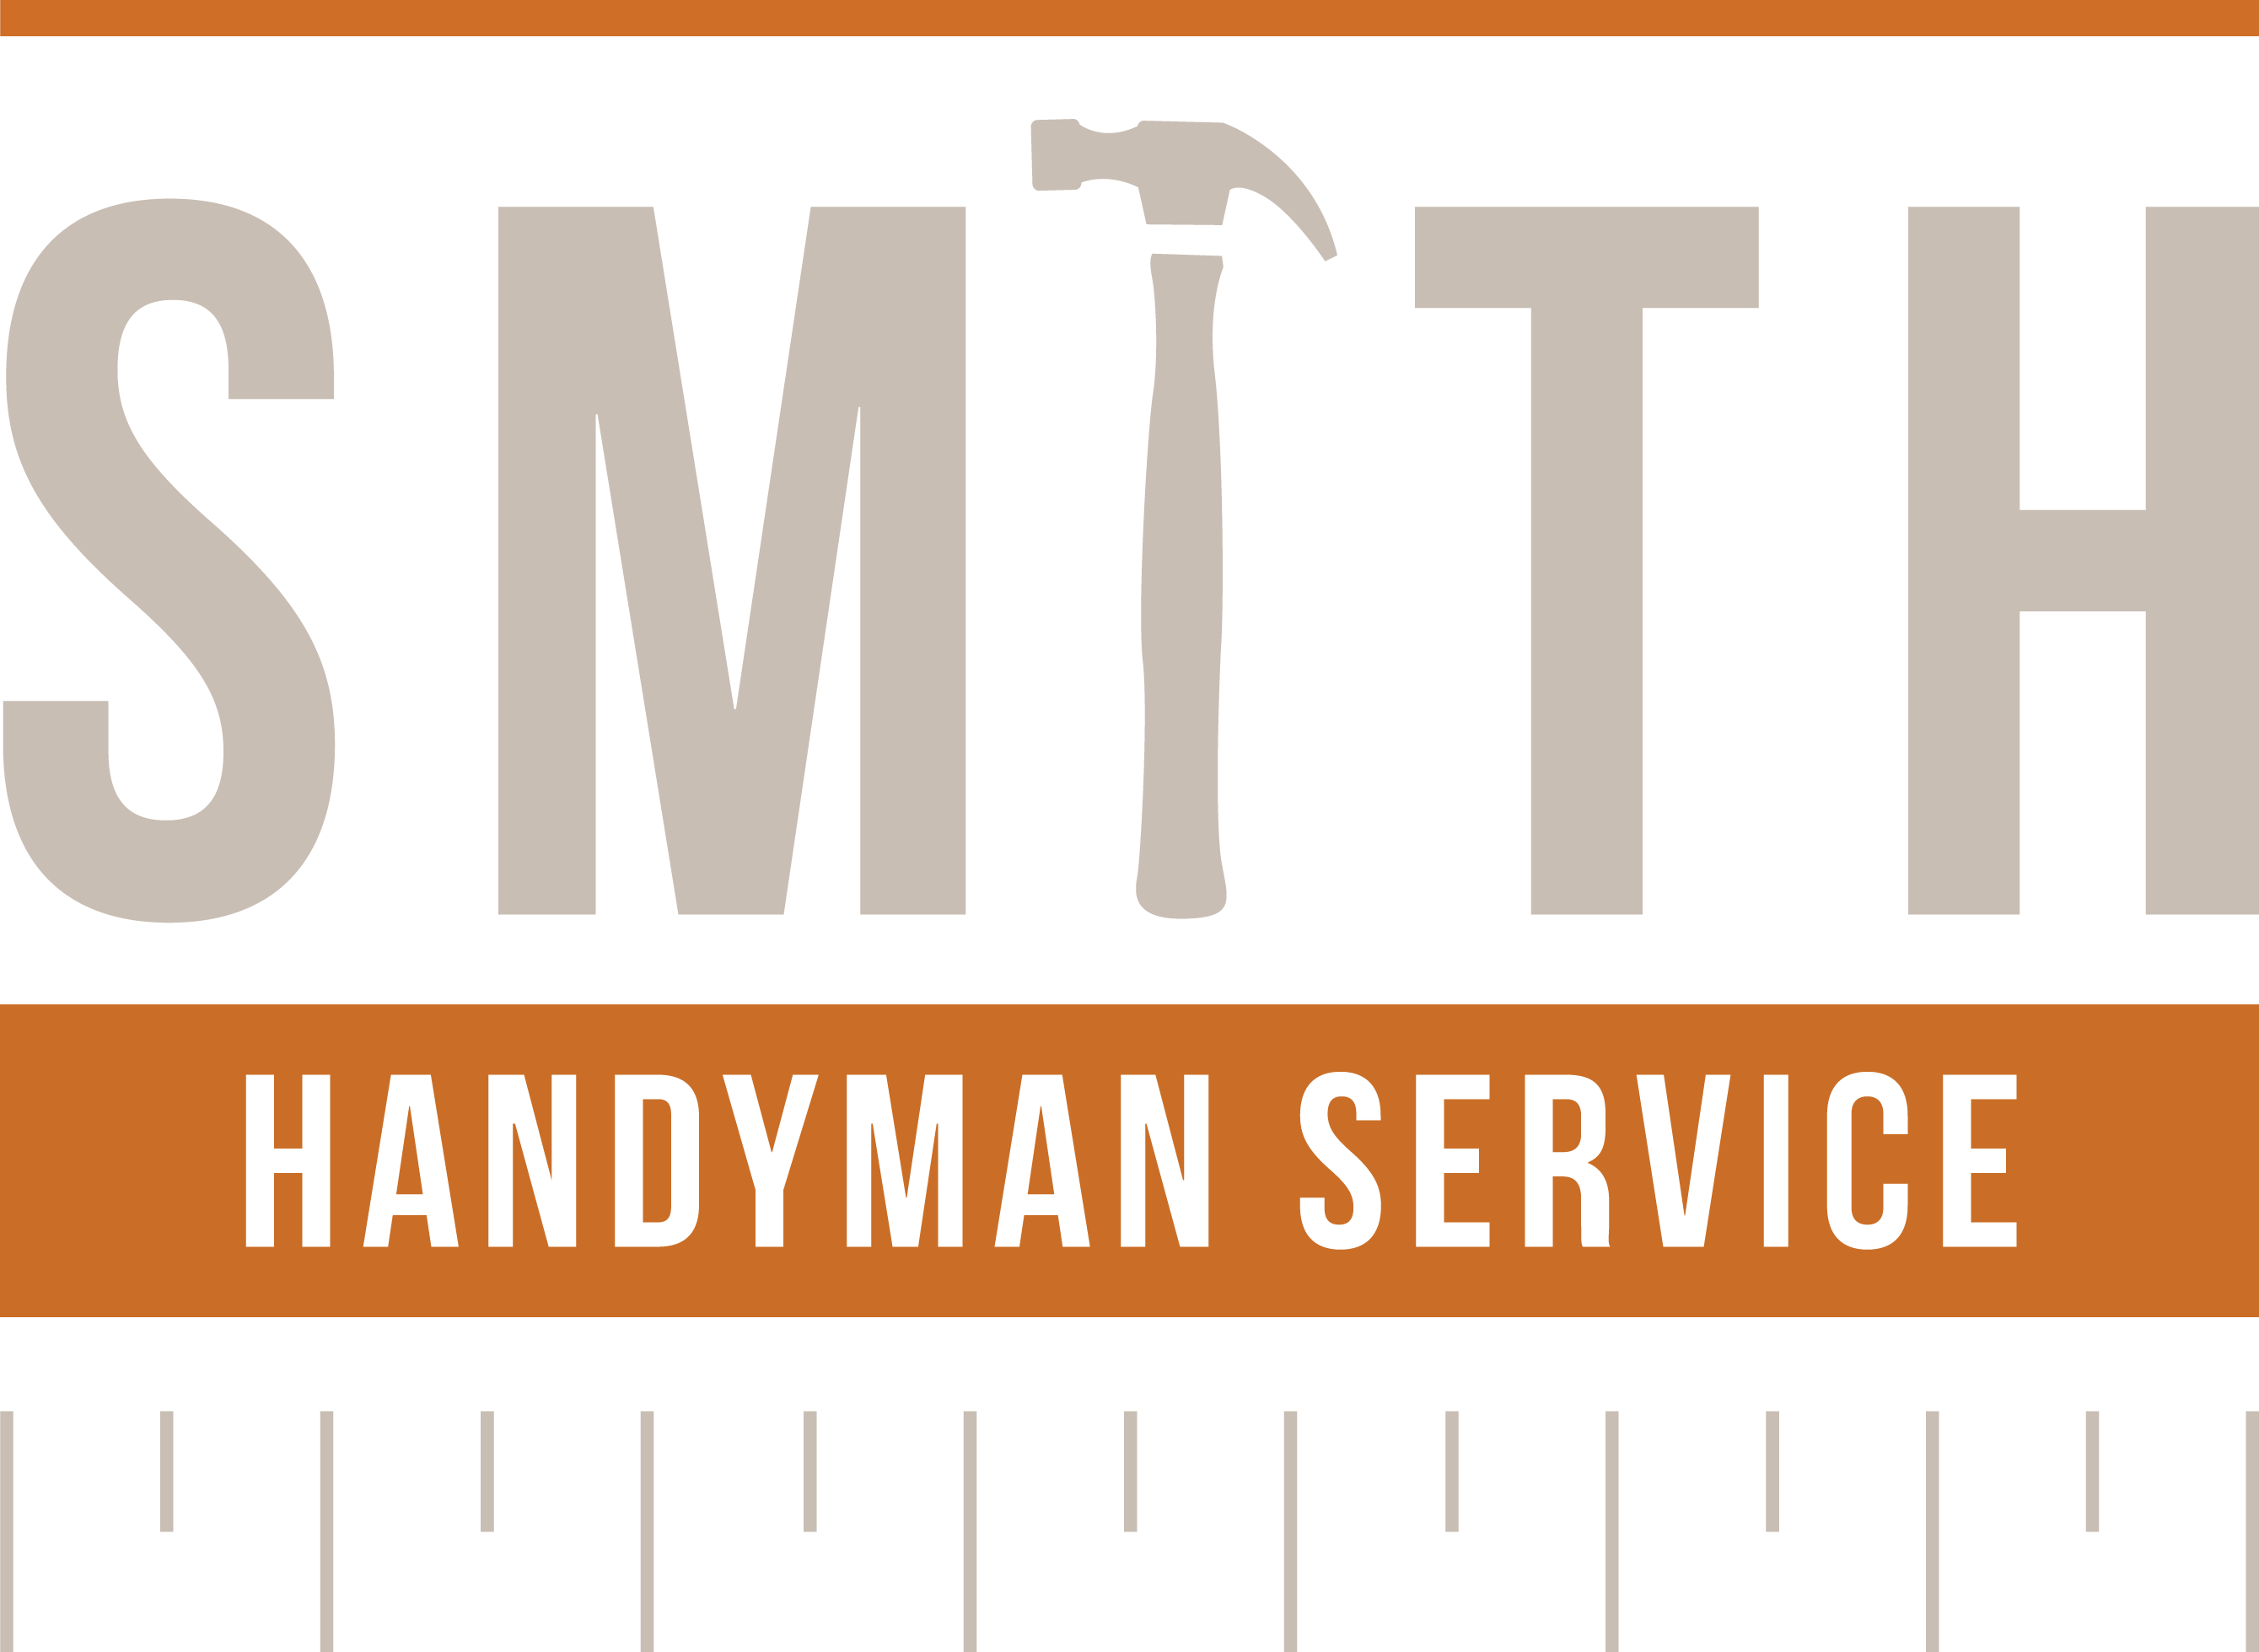 Smith handyman logo